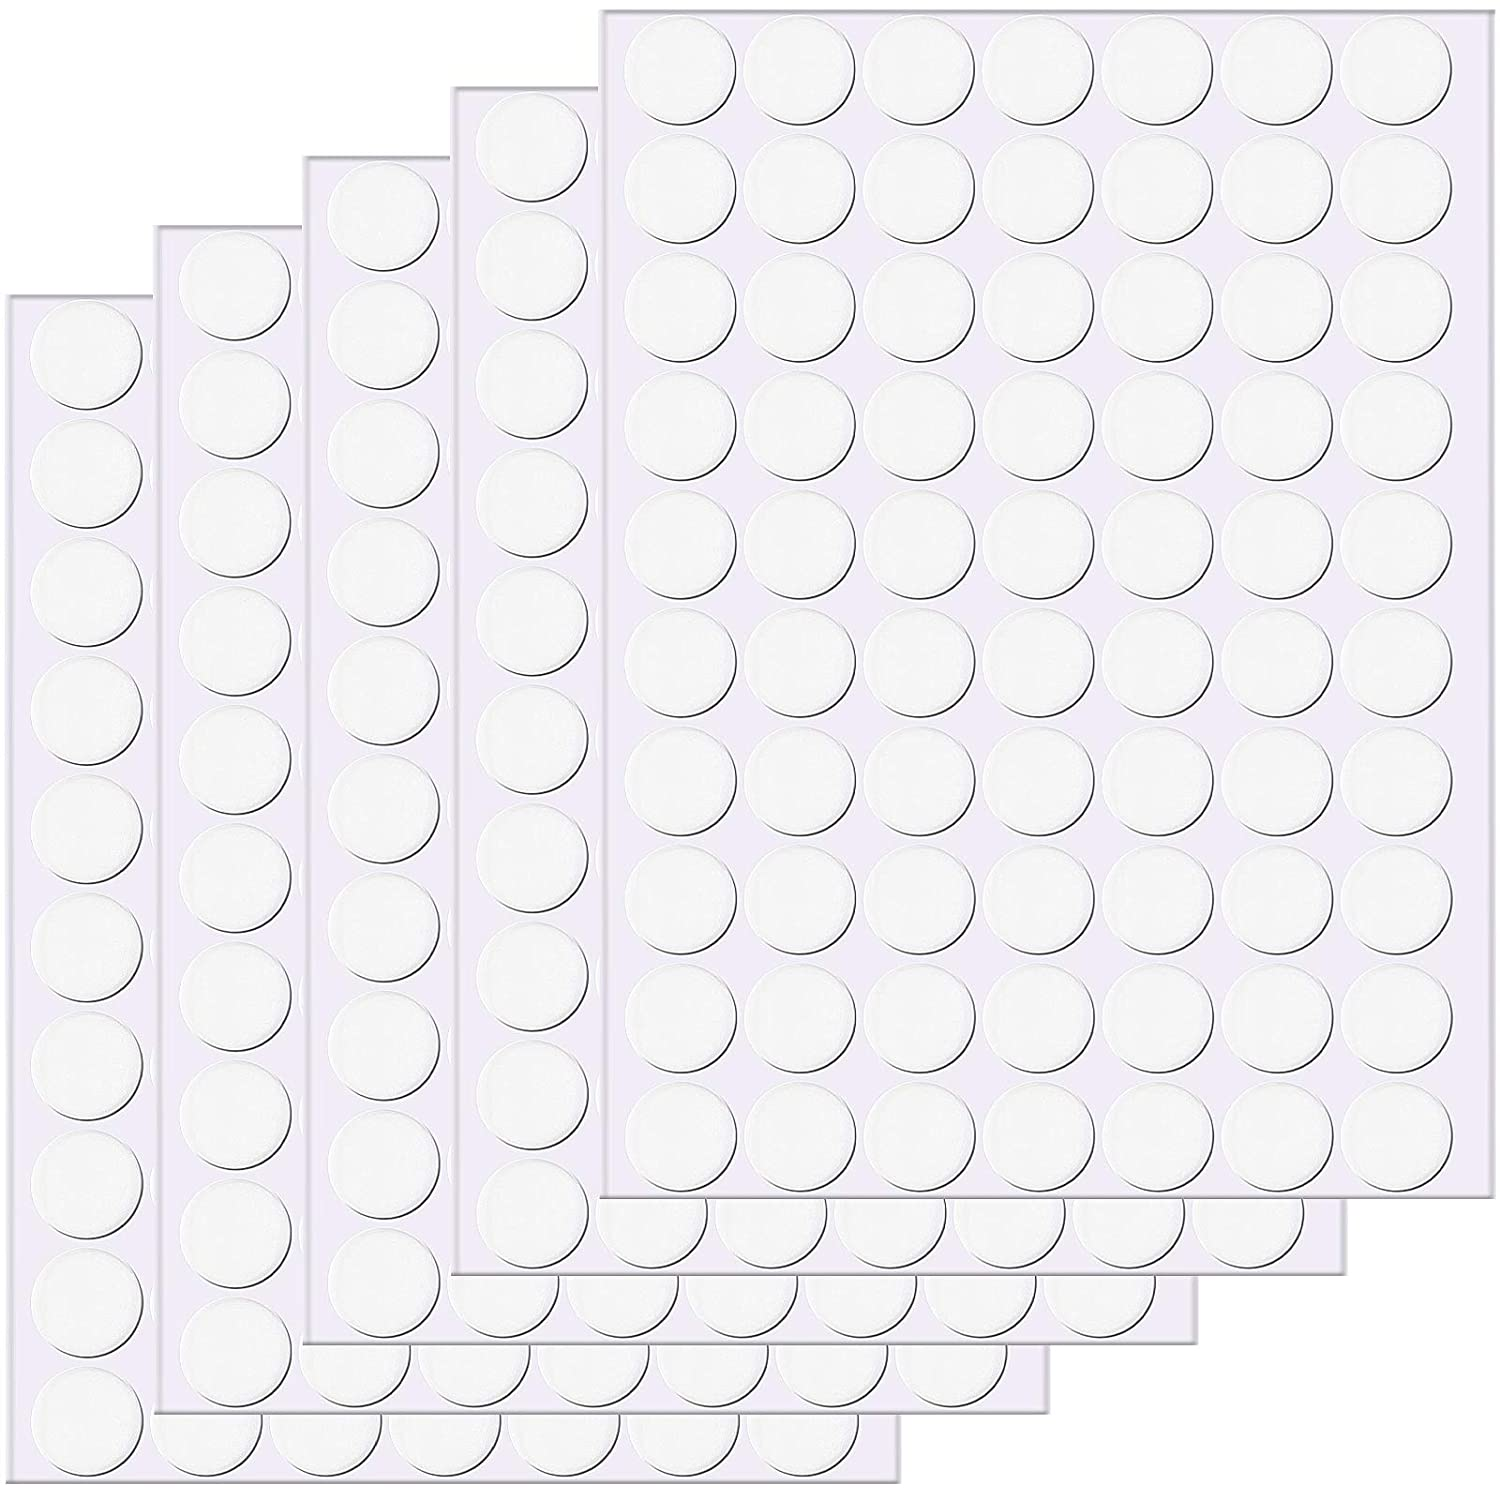 Clear Sticky Tack Removable Round Putty Reusable Transparent Double-Sided Round No Traces Adhesive Sticker for Christmas Festival Decoration, Metal, Glass, Wall, Ceramic, Wood (350 Pieces,20 mm)